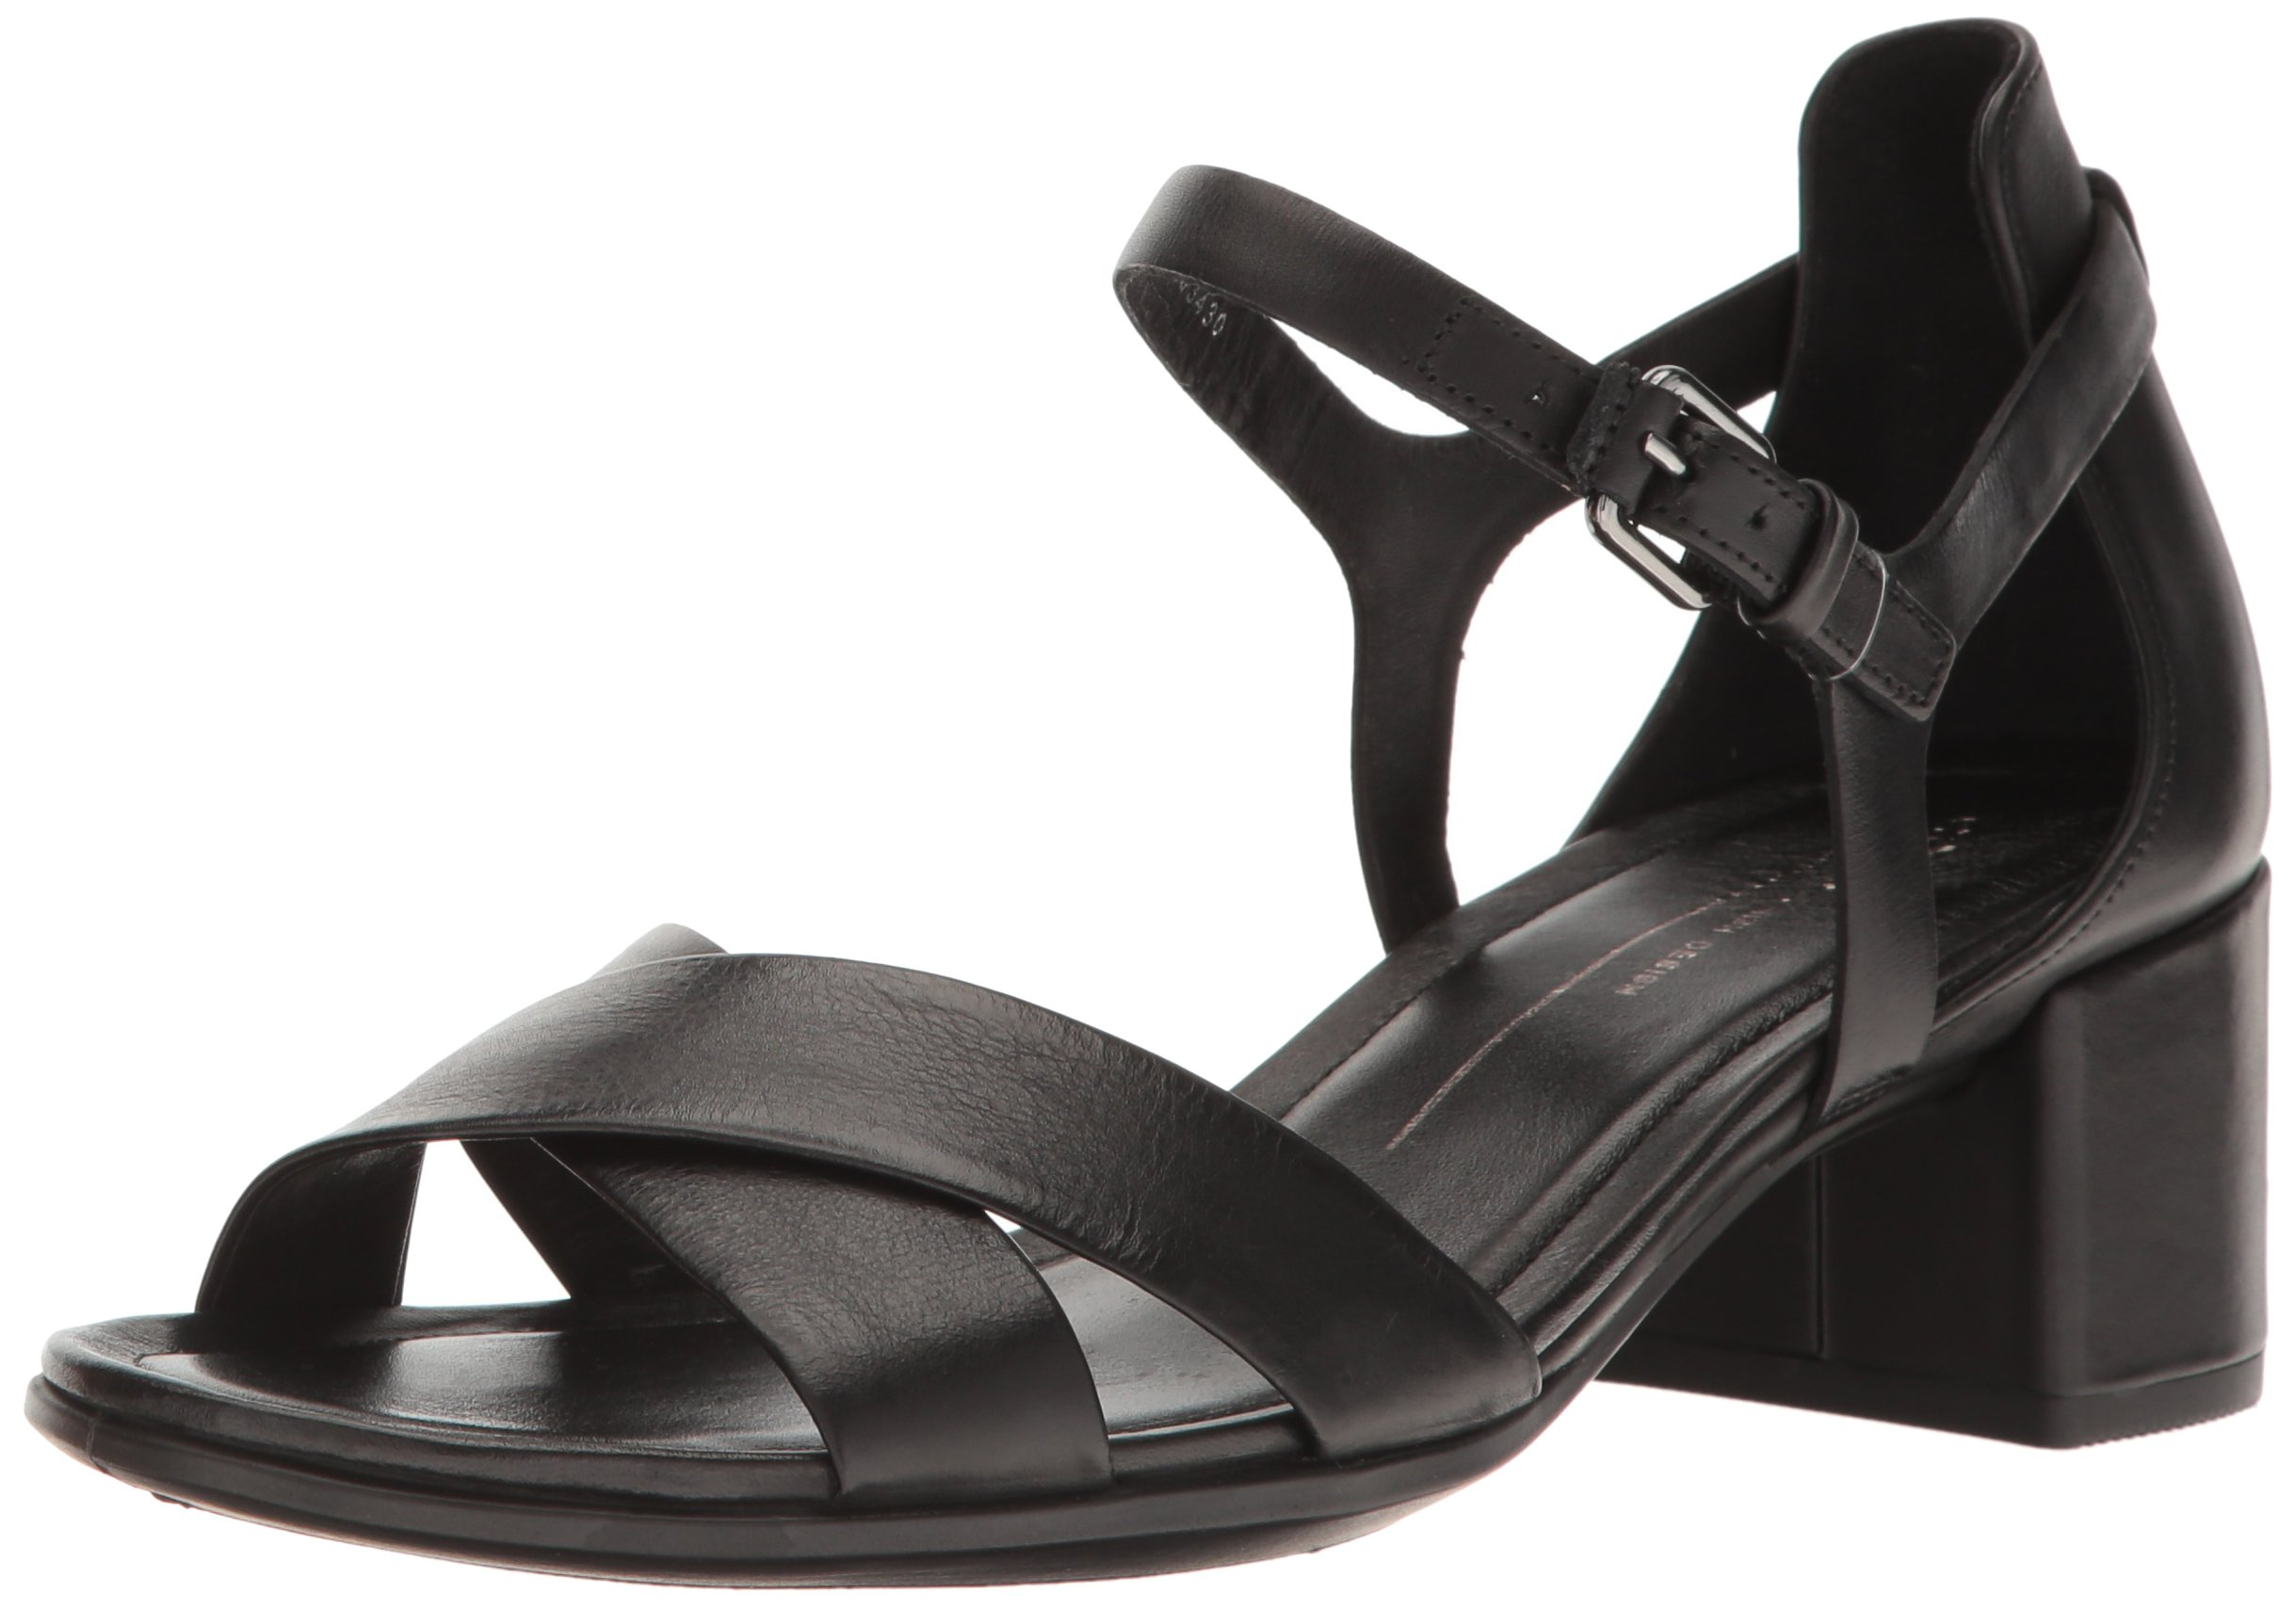 ECCO Women's Women's Shape 35 Block Heel Dress Sandal, Black, 37 EU/6-6.5 M US